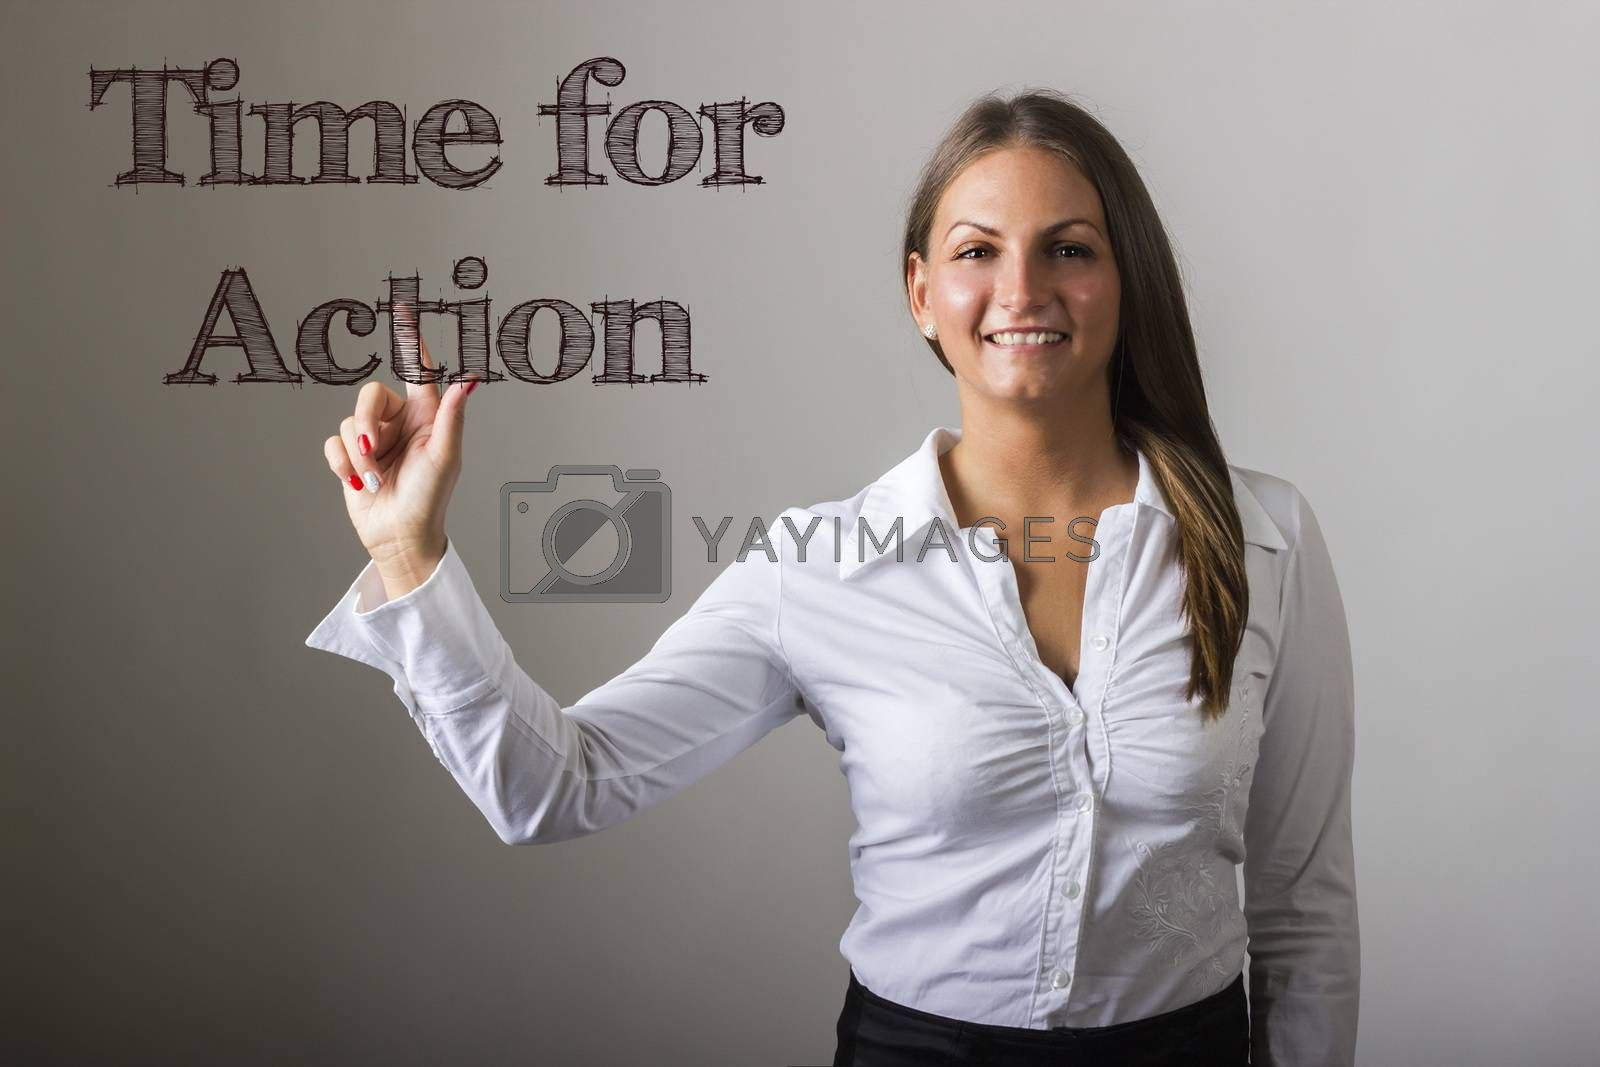 Time for Action - Beautiful girl touching text on transparent surface - horizontal image